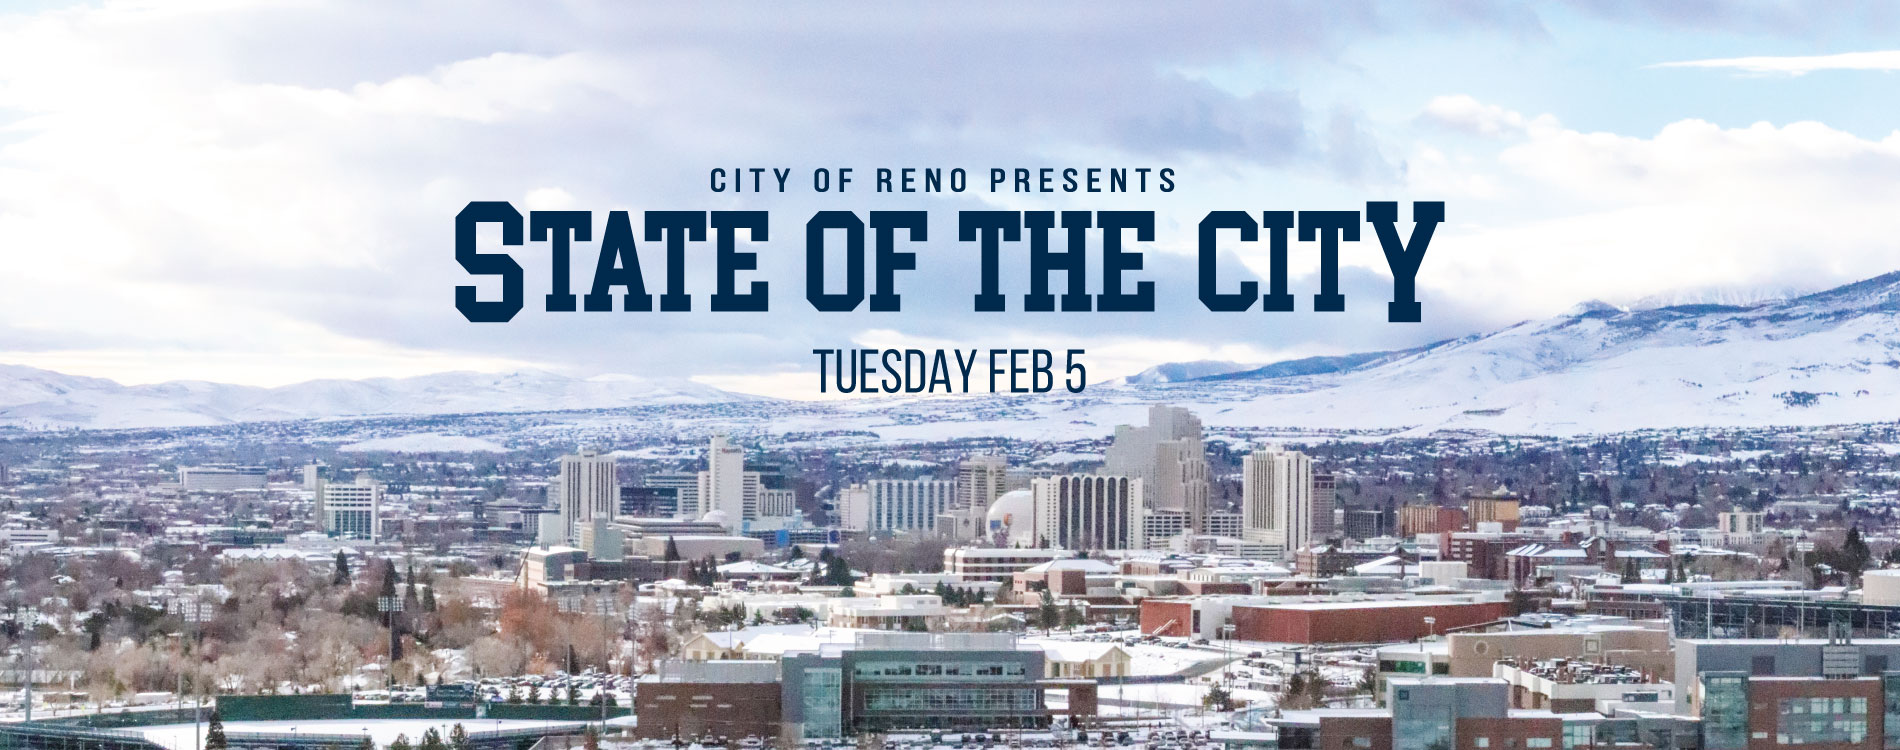 State of the City Tuesday February 5 text on top of overview of Reno covered in snow